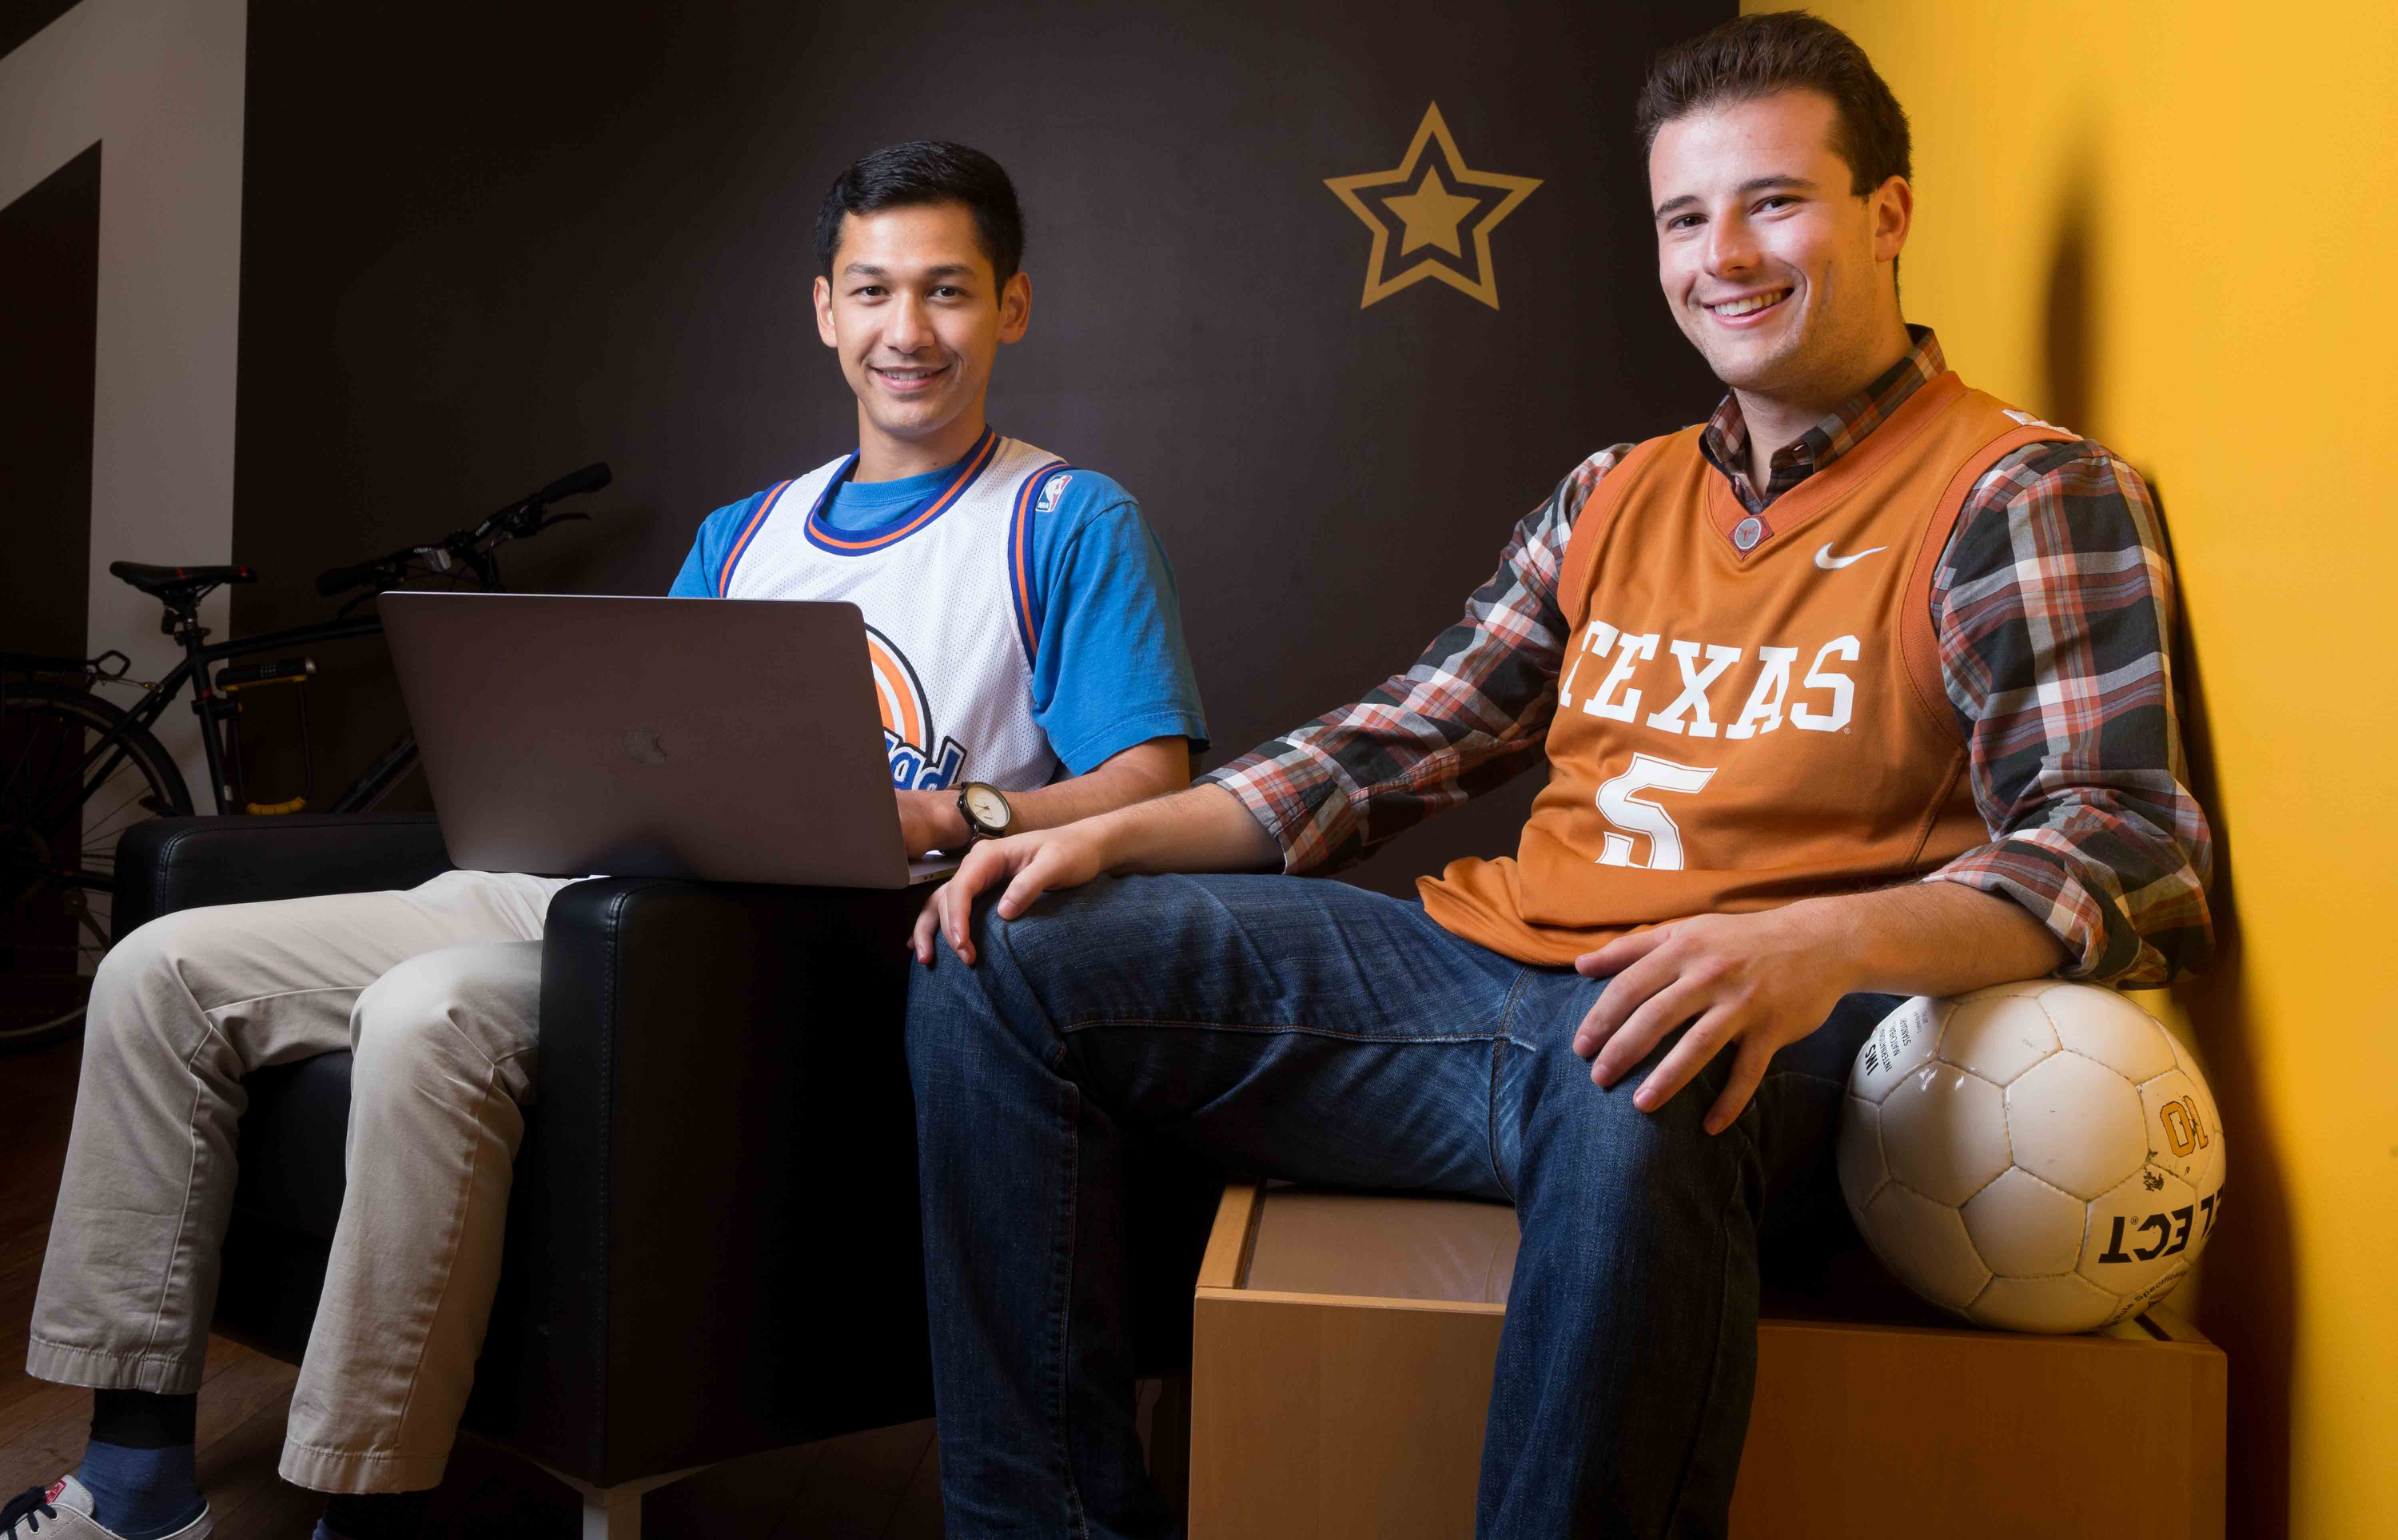 Zubin Teherani, left, and Evan Brandoff, founders of start-up LeagueSide, want to make youth sports available to every kid by helping link leagues with sponsors. JESSICA GRIFFIN / Staff Photographer )